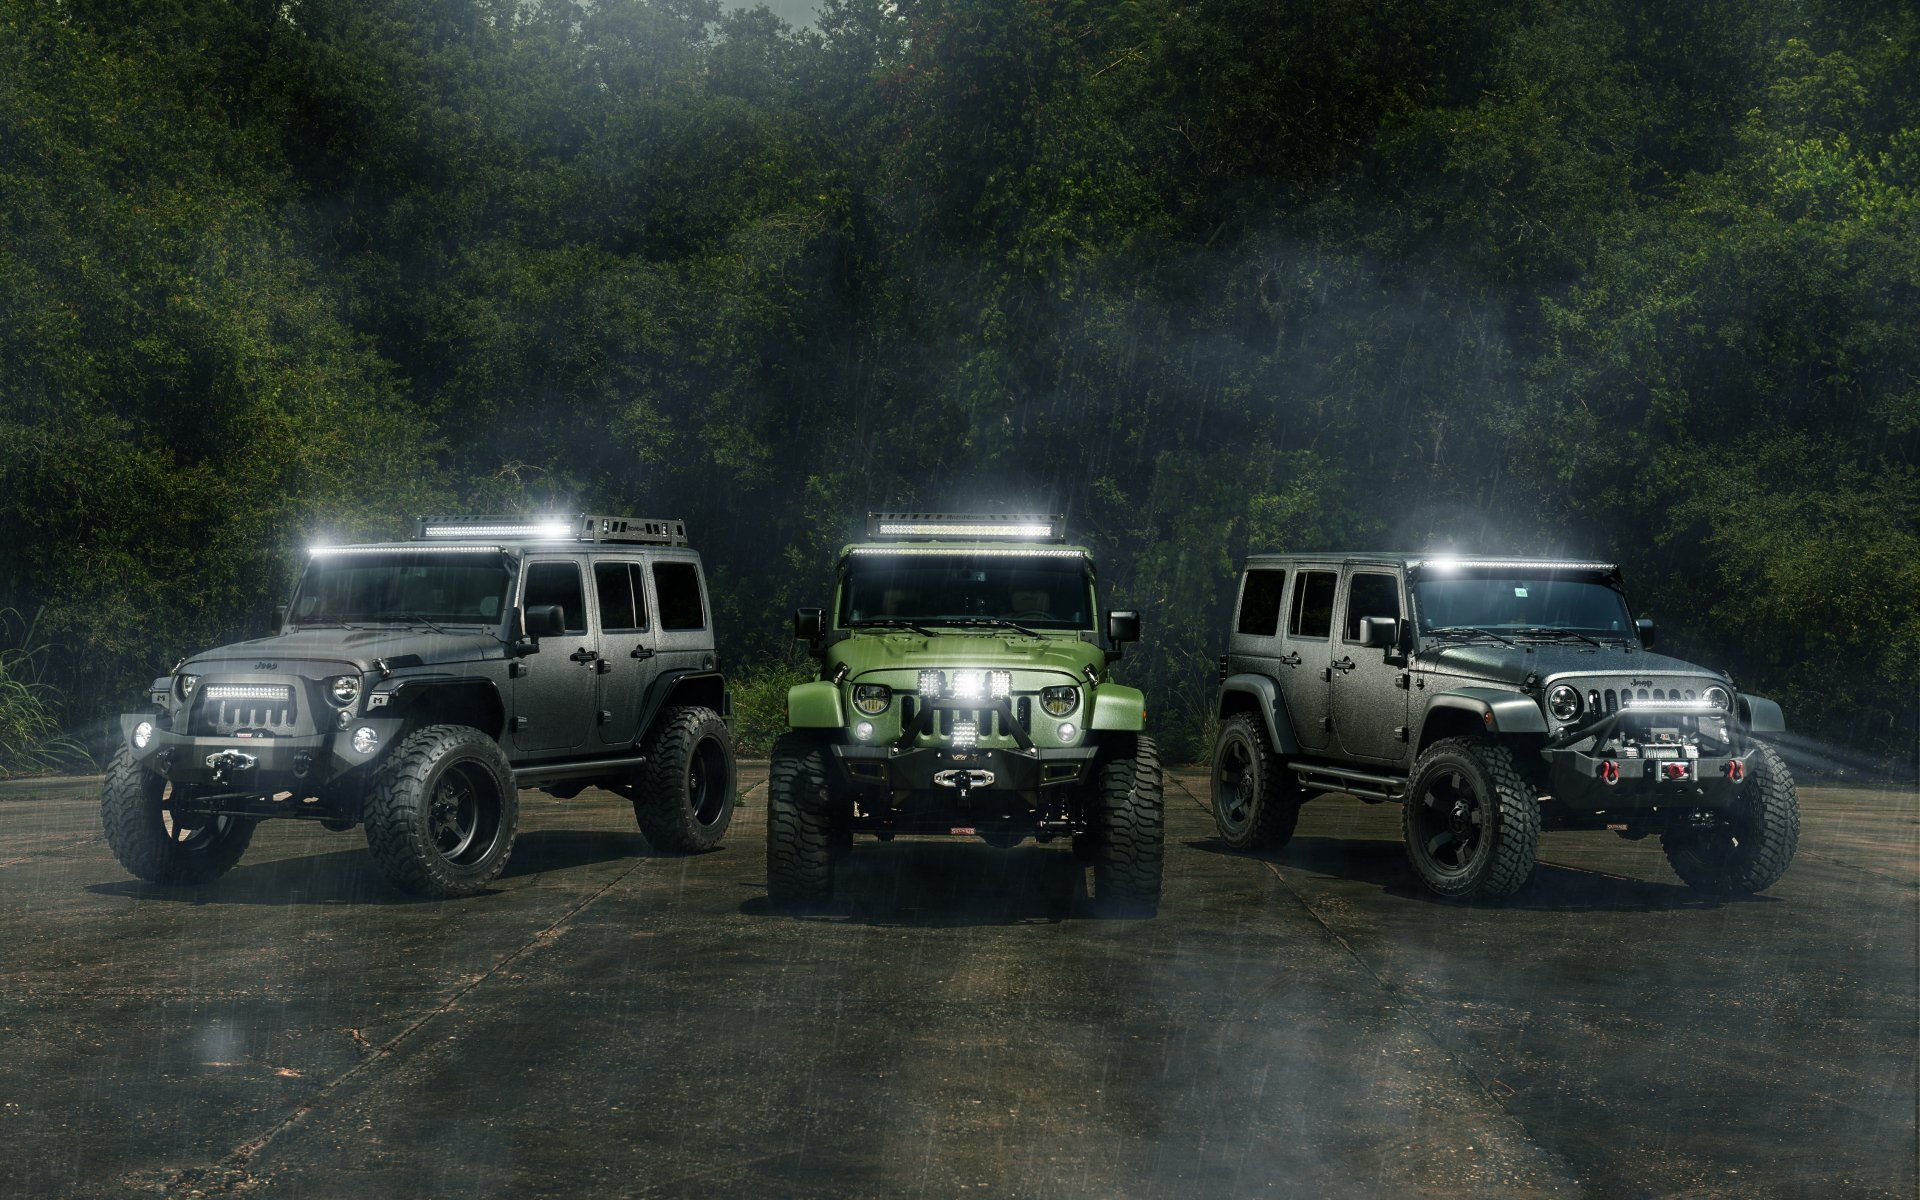 Jeep Wrangler Unlimited Rubicon Wallpapers Desktop Background Jeep Wrangler Unlimited Wrangler Unlimited Jeep Wrangler Unlimited Rubicon